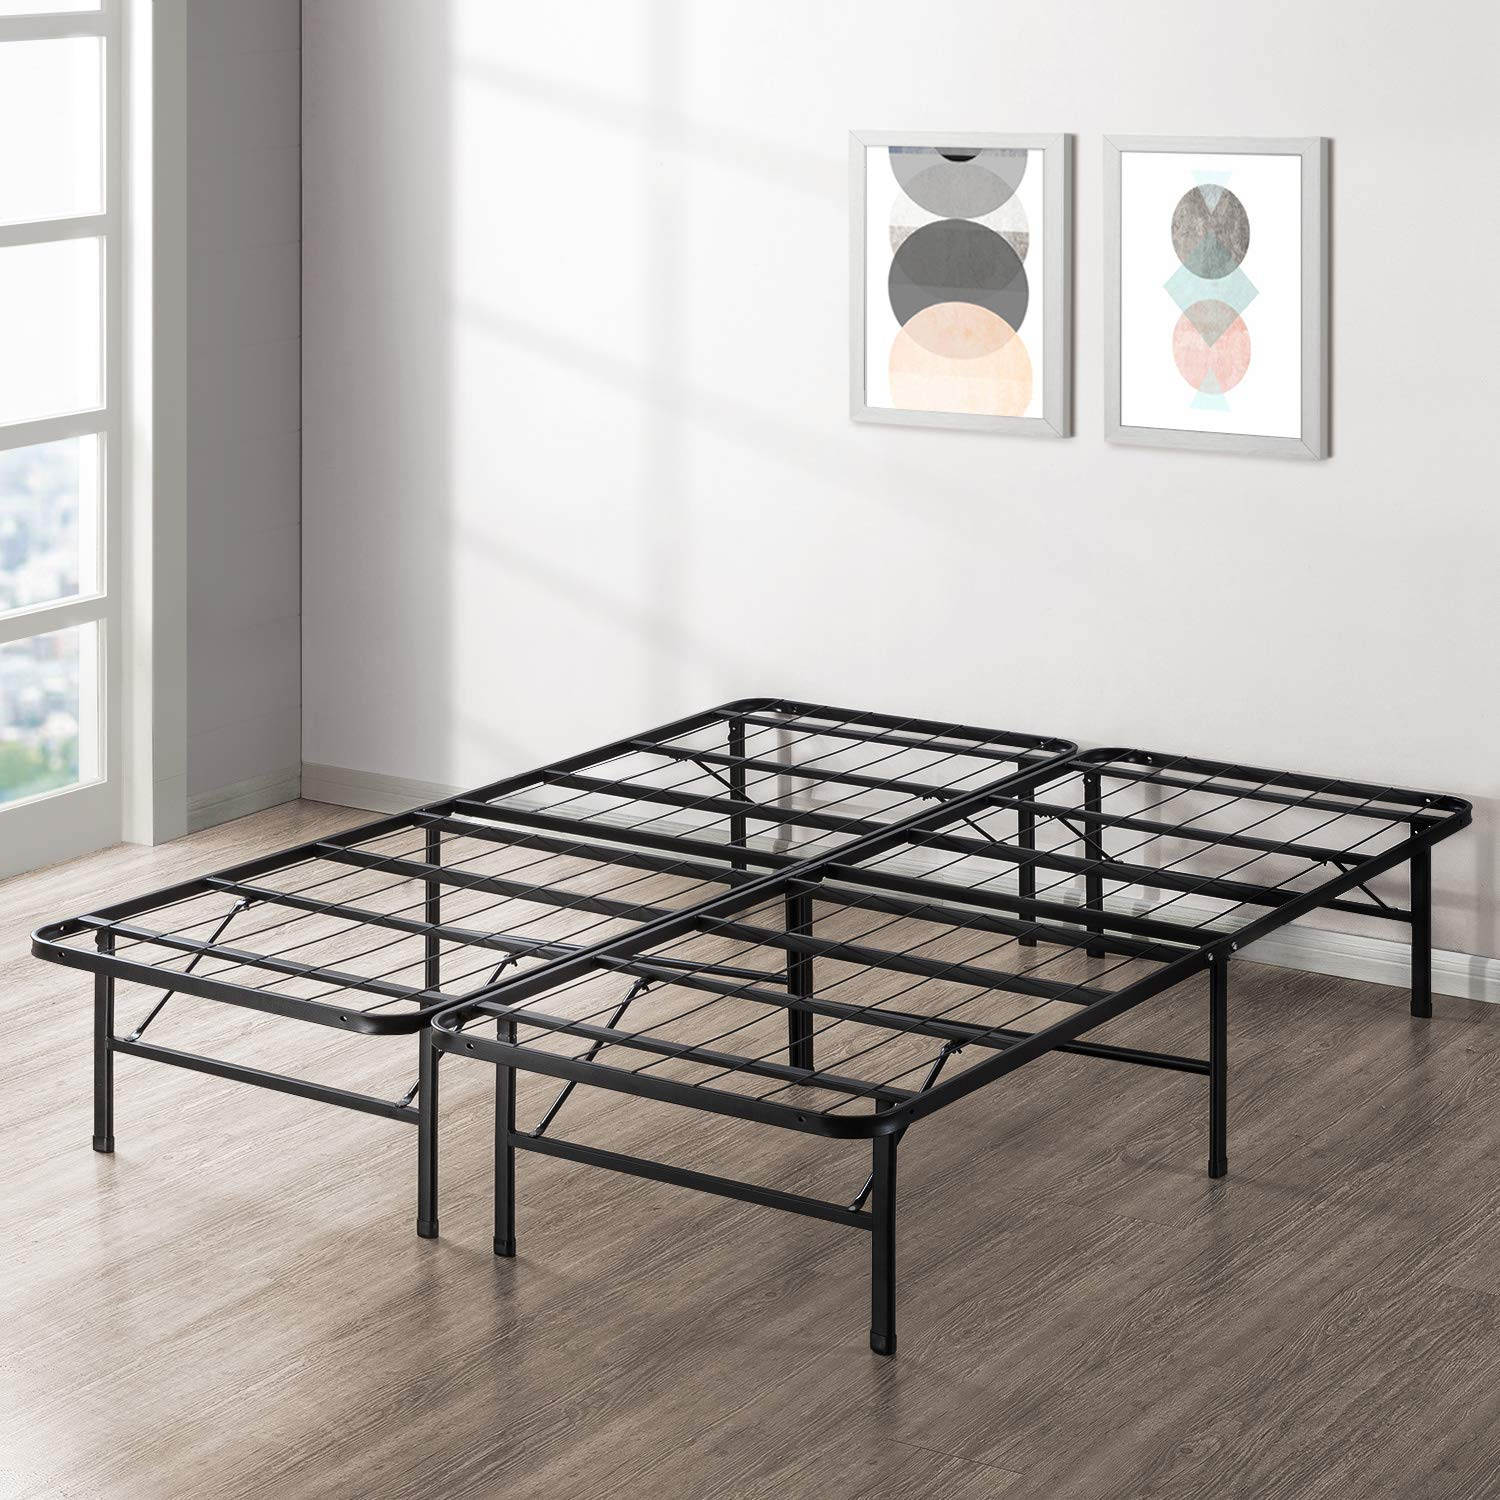 Best Price Mattress New Innovated Box Spring Metal Bed Frame, Queen by Best Price Mattress